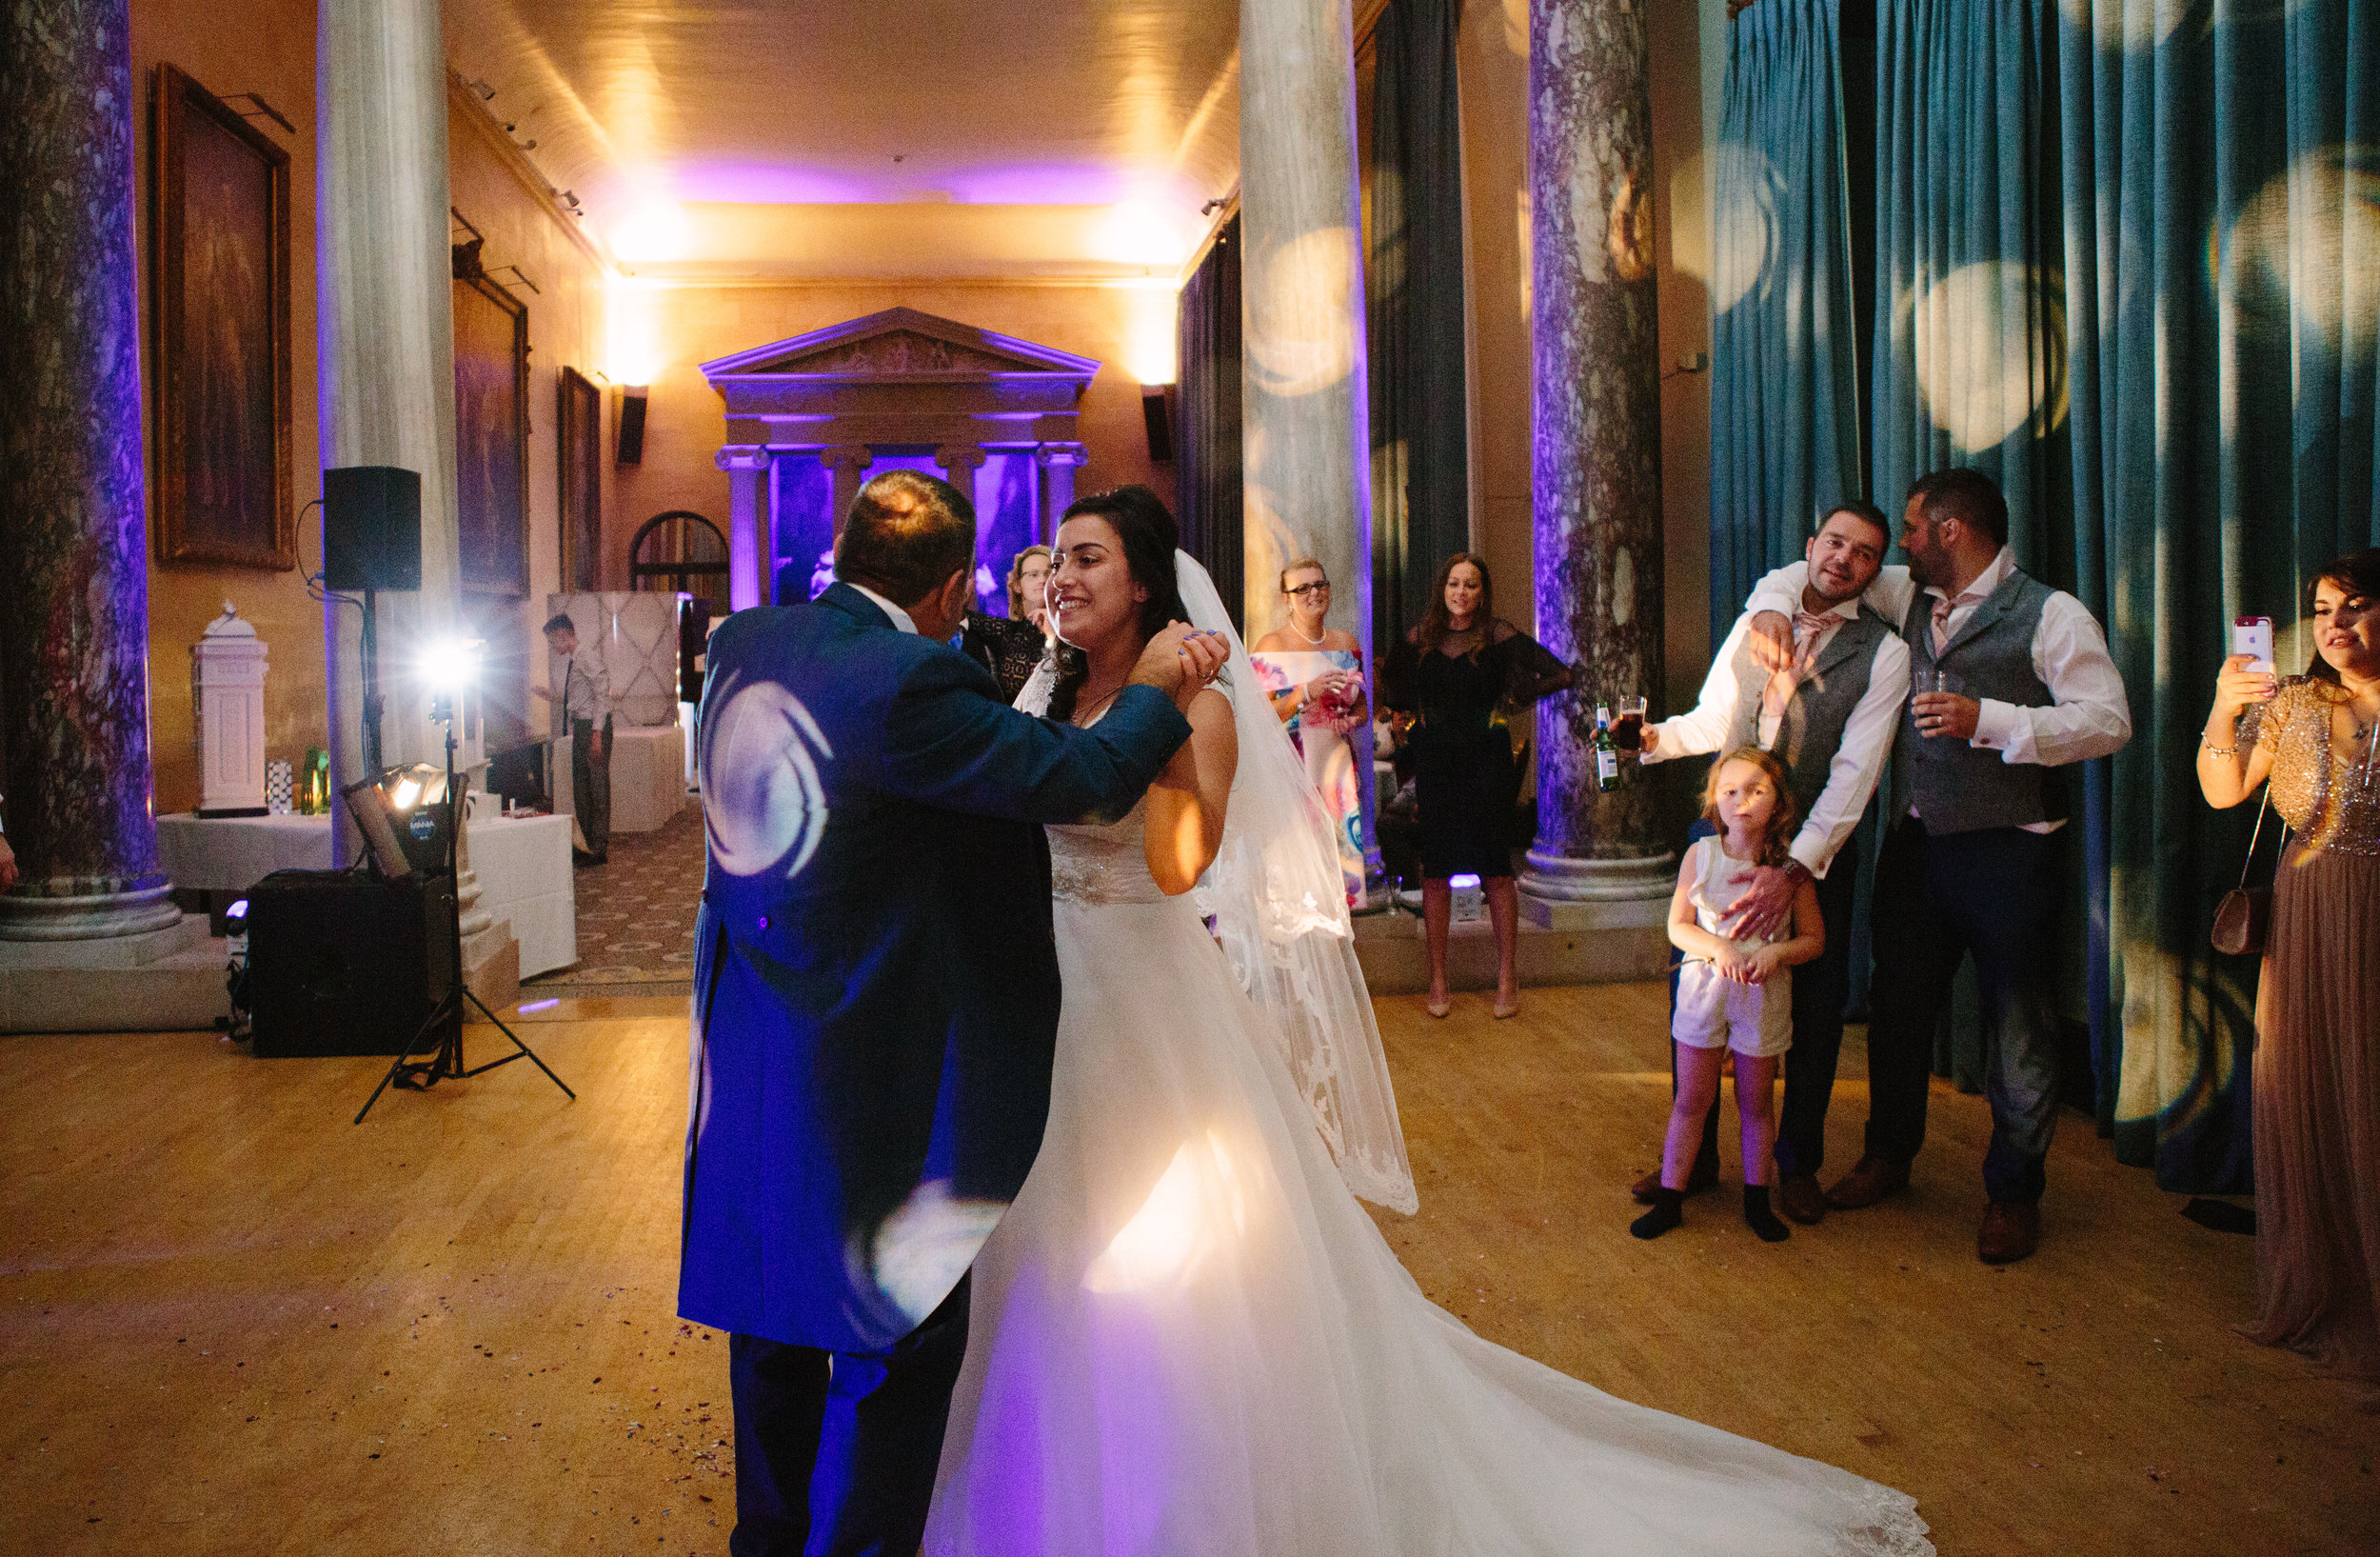 london-bedfordshire-uk-wedding-photography-woburn-sculpture-gallery-dancing-party-85